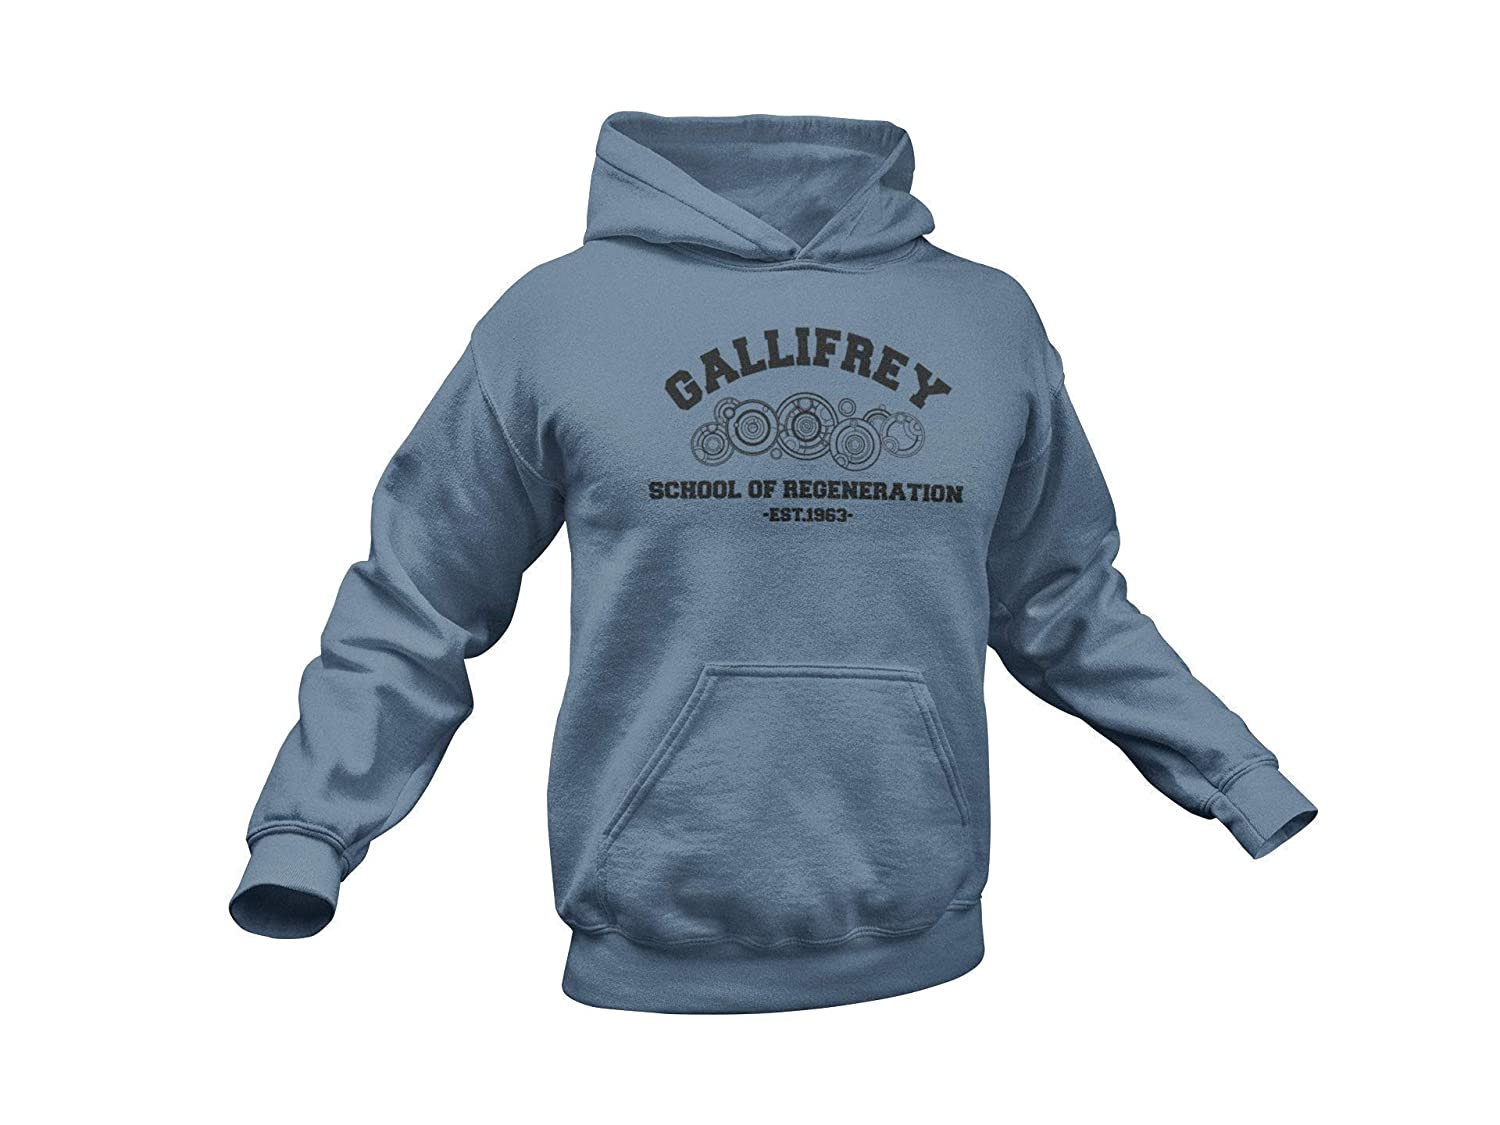 Gallifrey Hoodie. Time traveller Adult Inspired Large-scale sale Outlet ☆ Free Shipping i Unisex